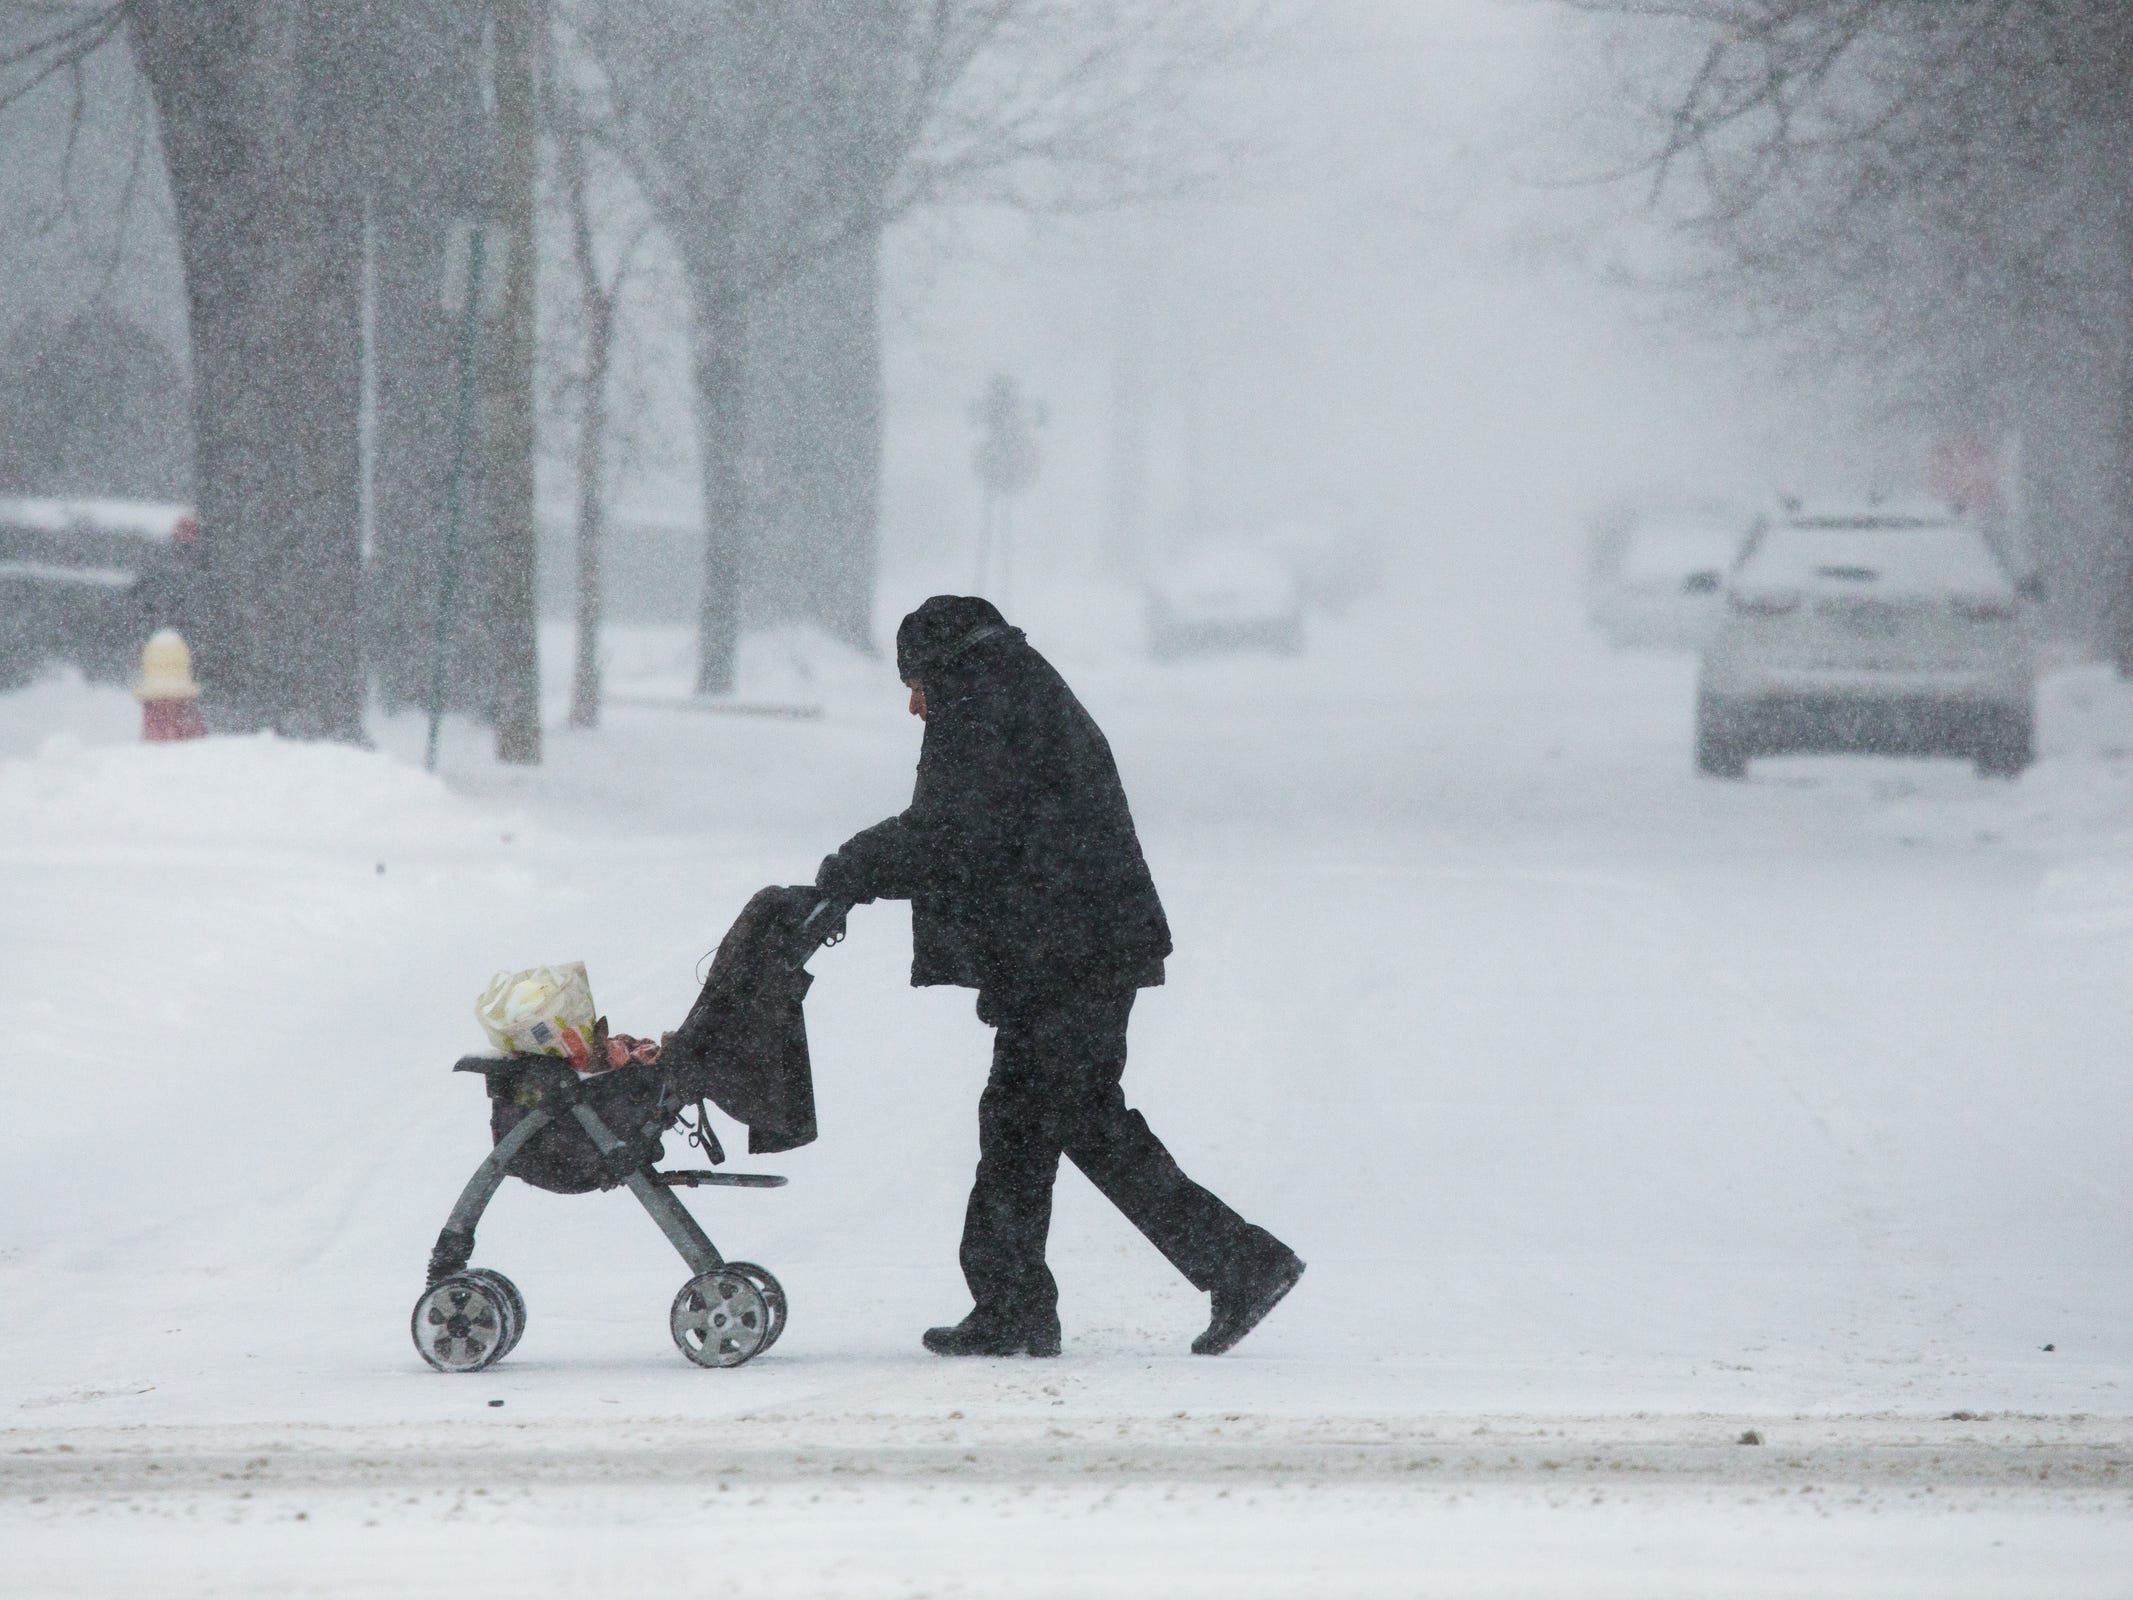 A man pushes a stroller with groceries as flurries swirl around on Woodward Ave. in Detroit on Monday, January 28, 2019.